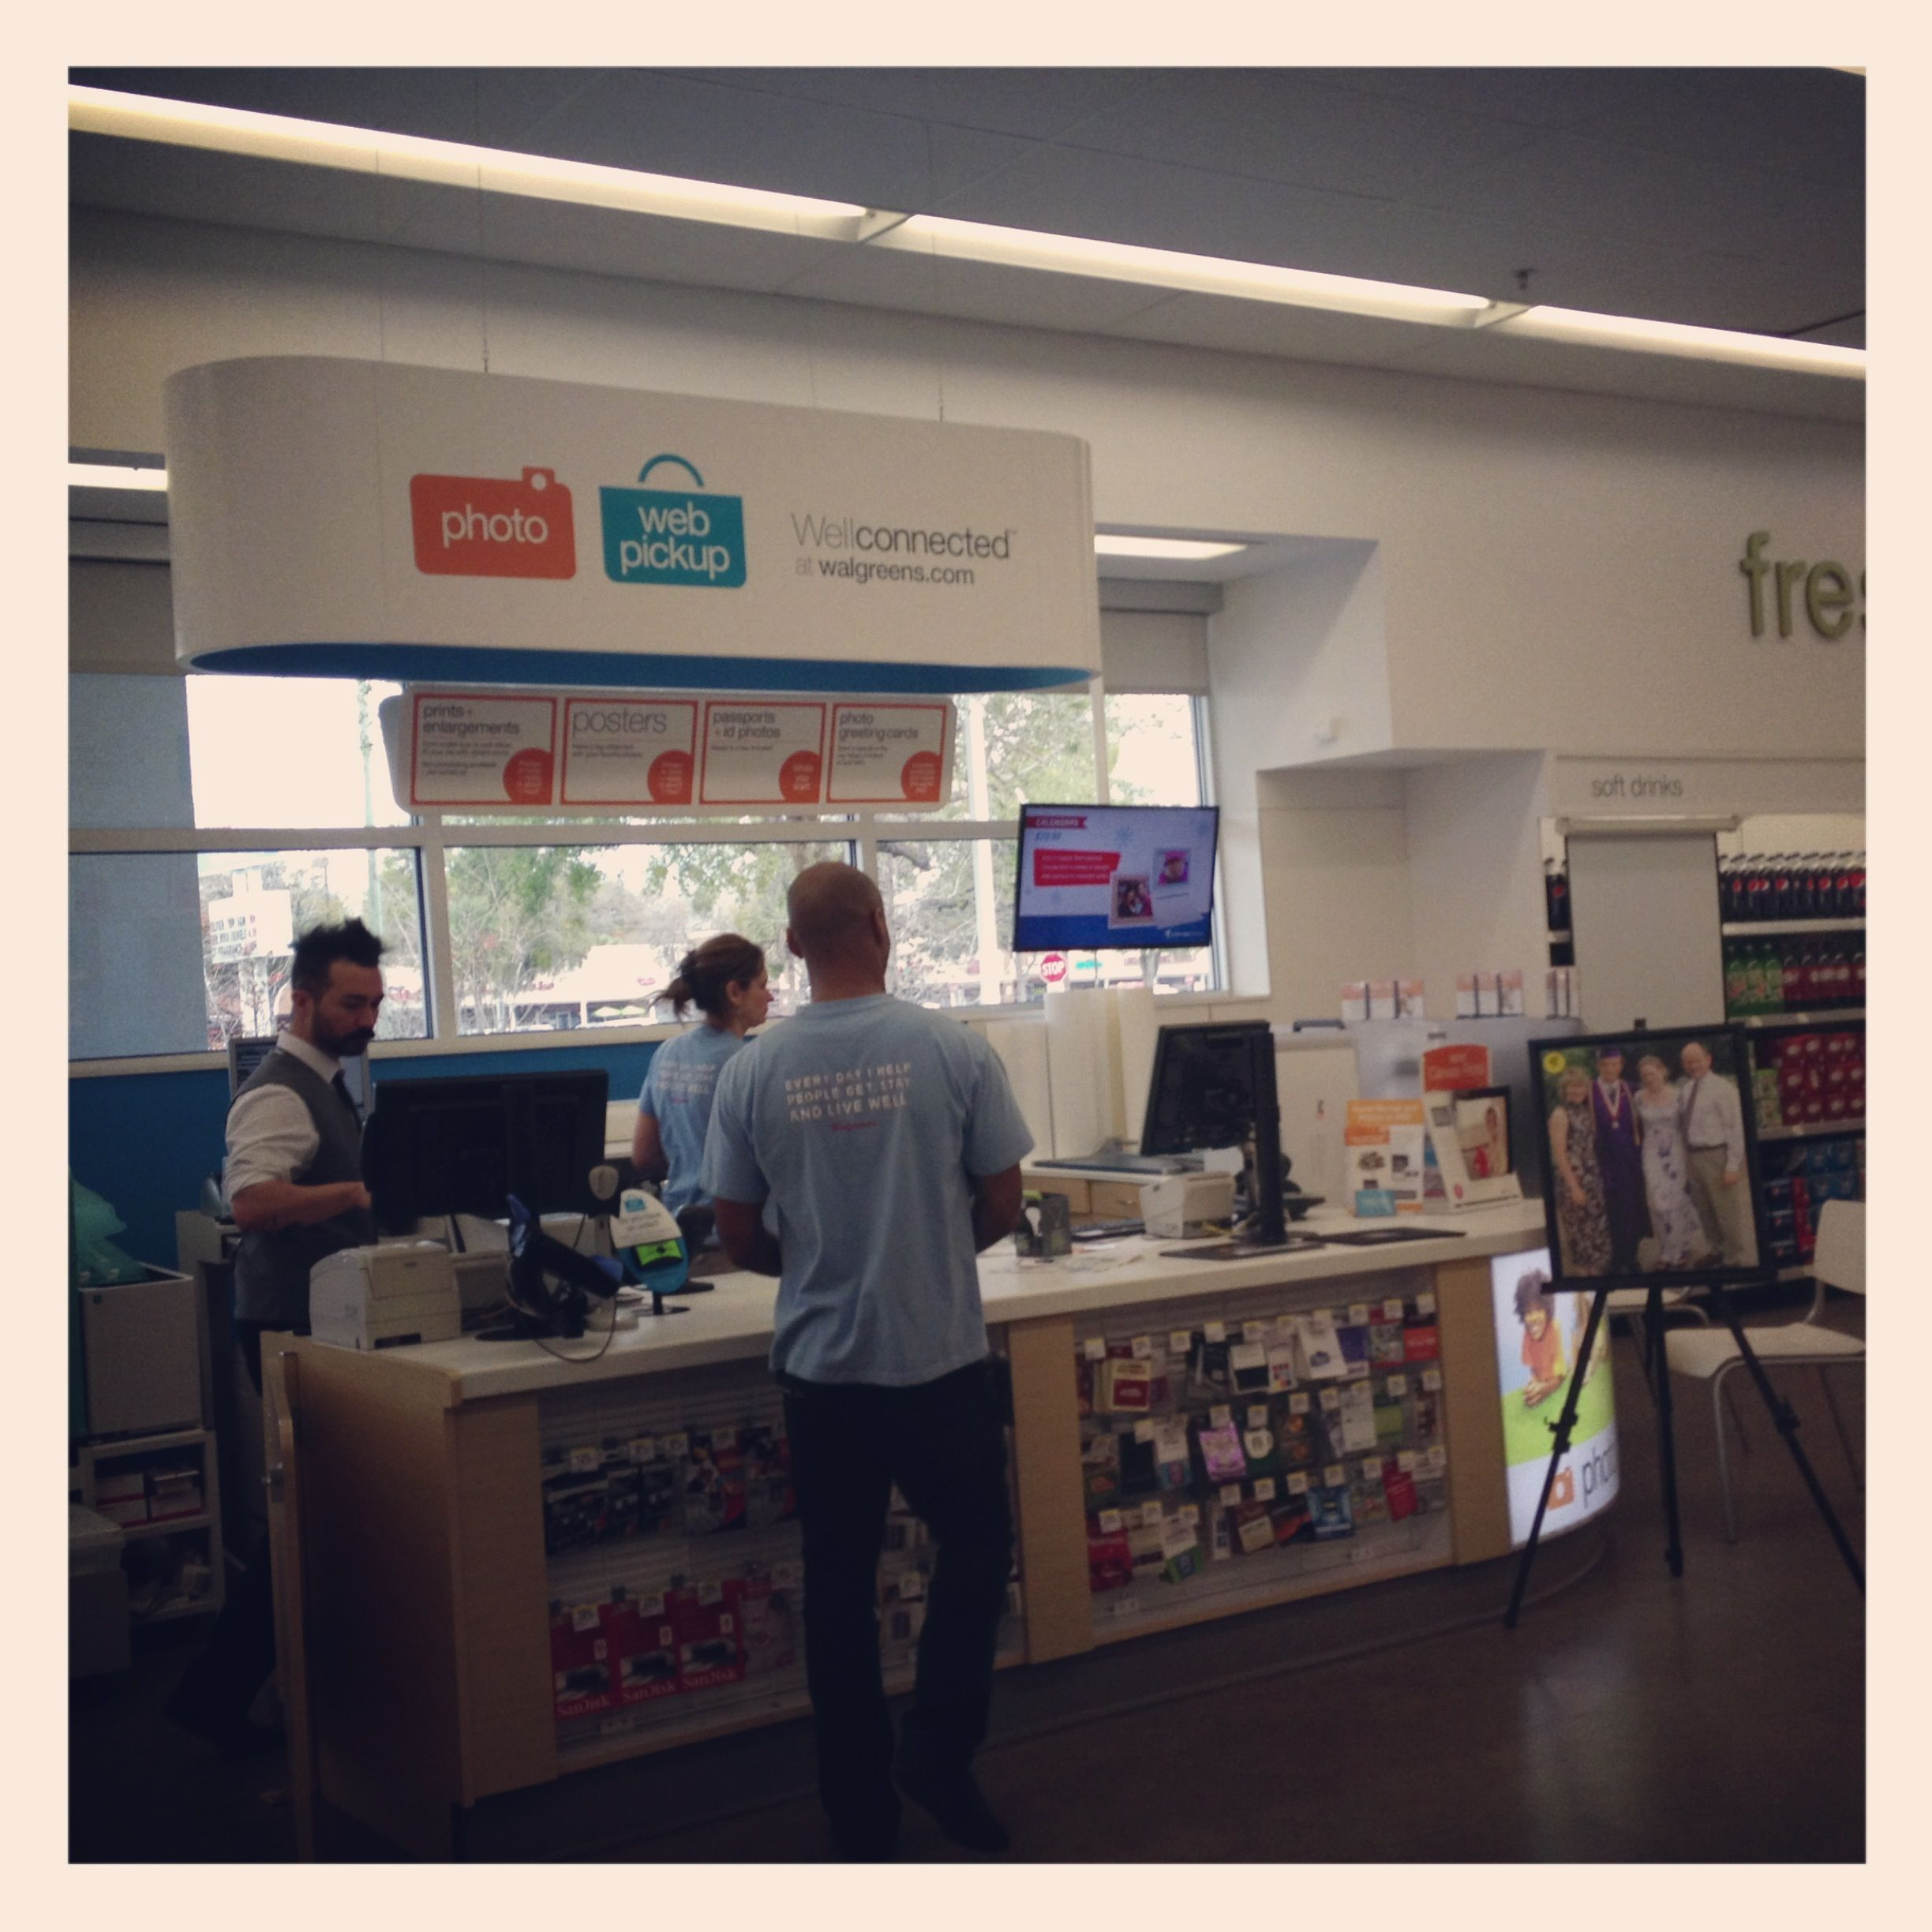 Walgreens Web Pickup Counter #HappyHealthy